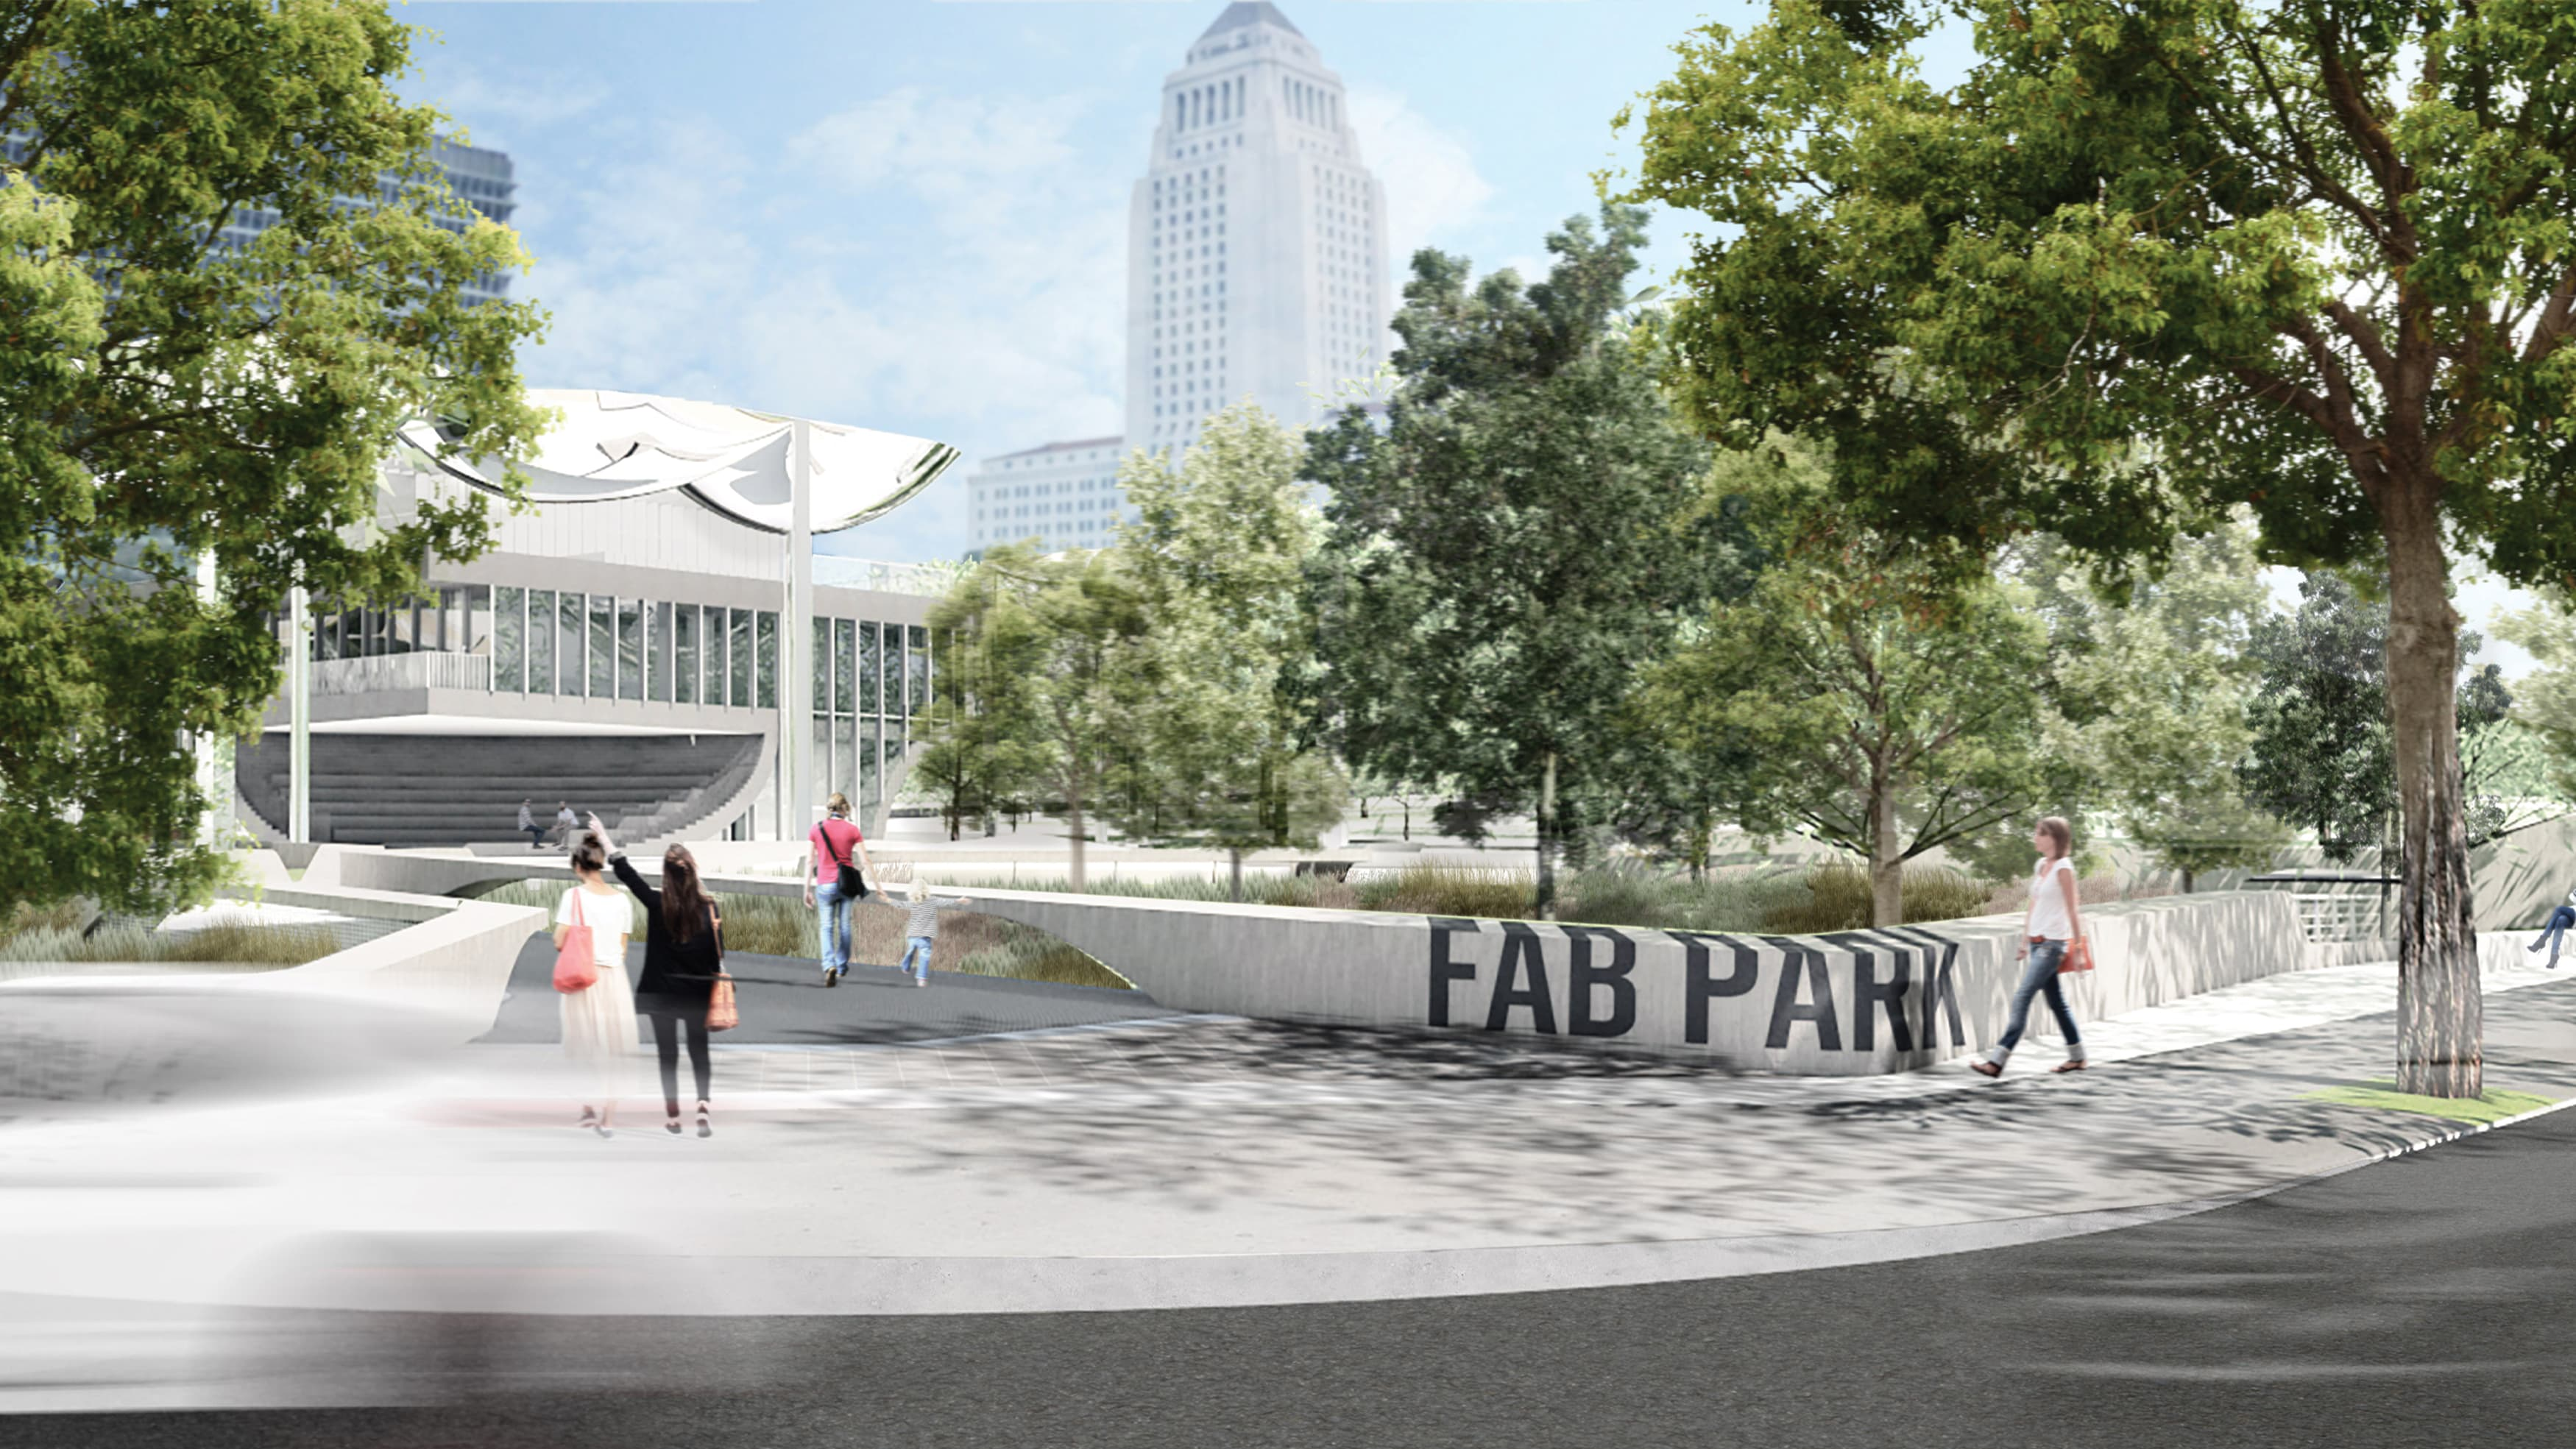 Street view of the entrance to First and Broadway Park with placemaking identity signage